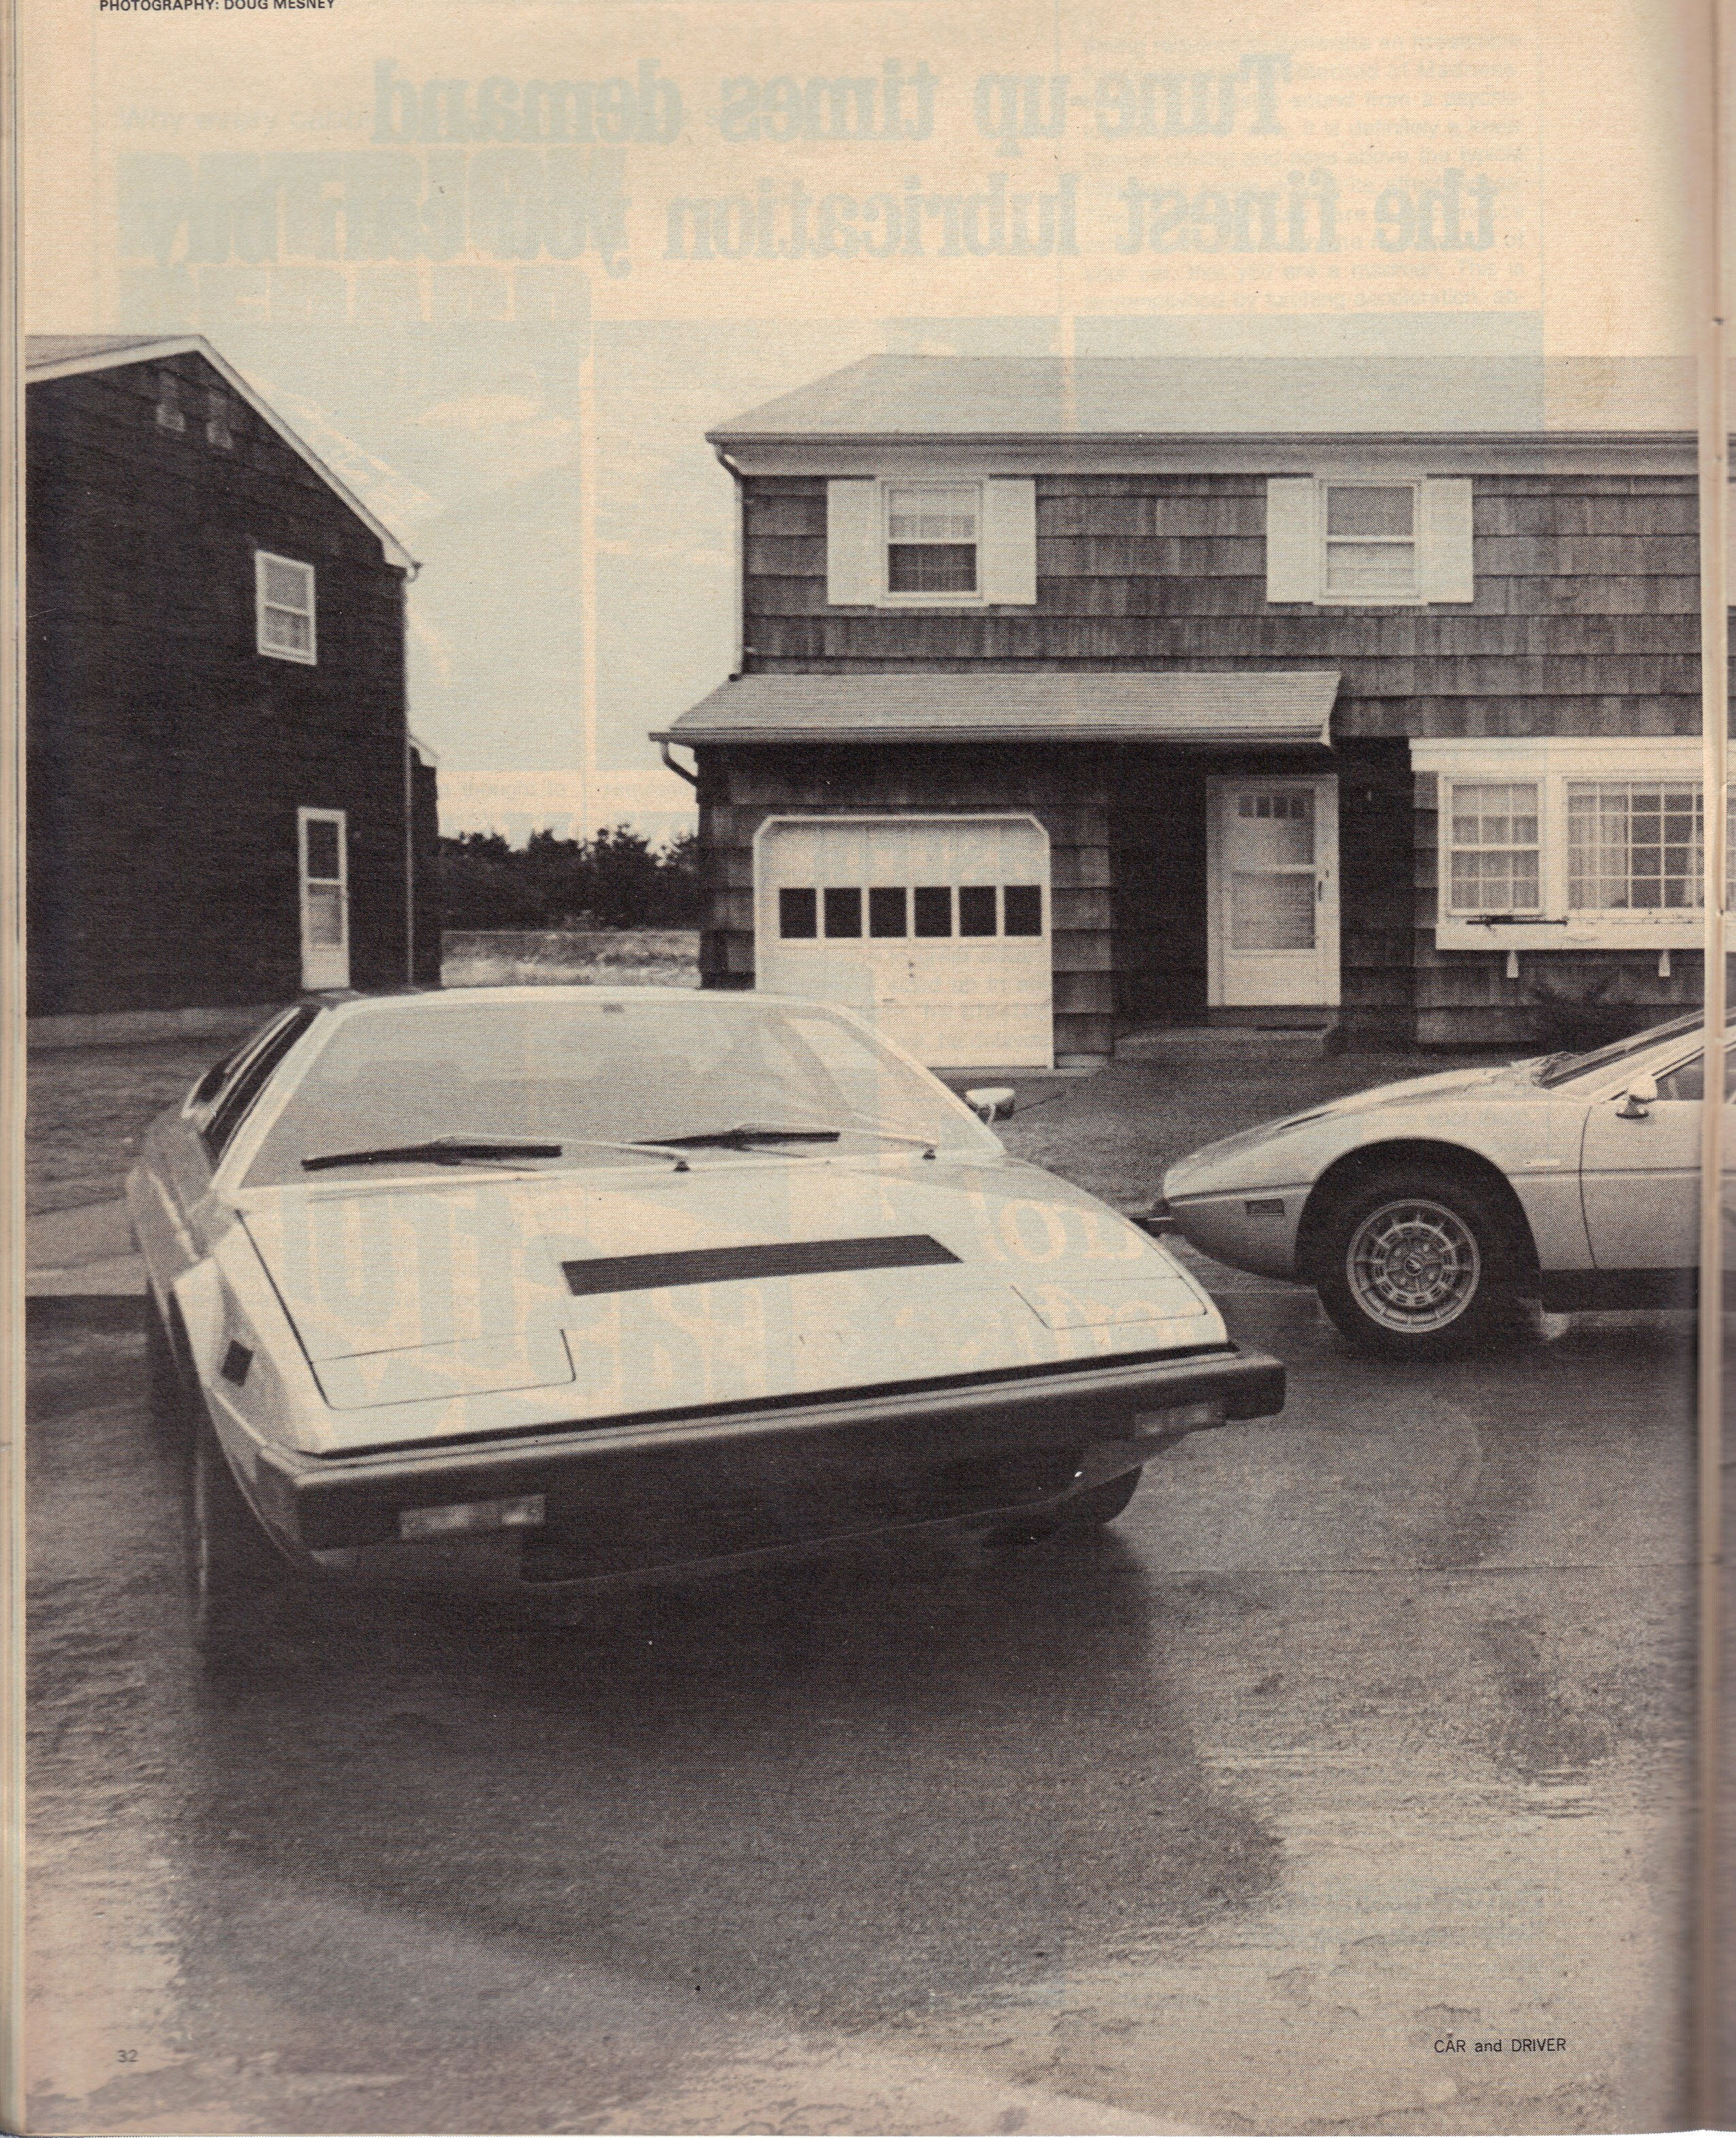 Copyright Car & Driver Magazine, Foto: Doug Mesney, Text Patrick Bedard 1975, All rights reservec